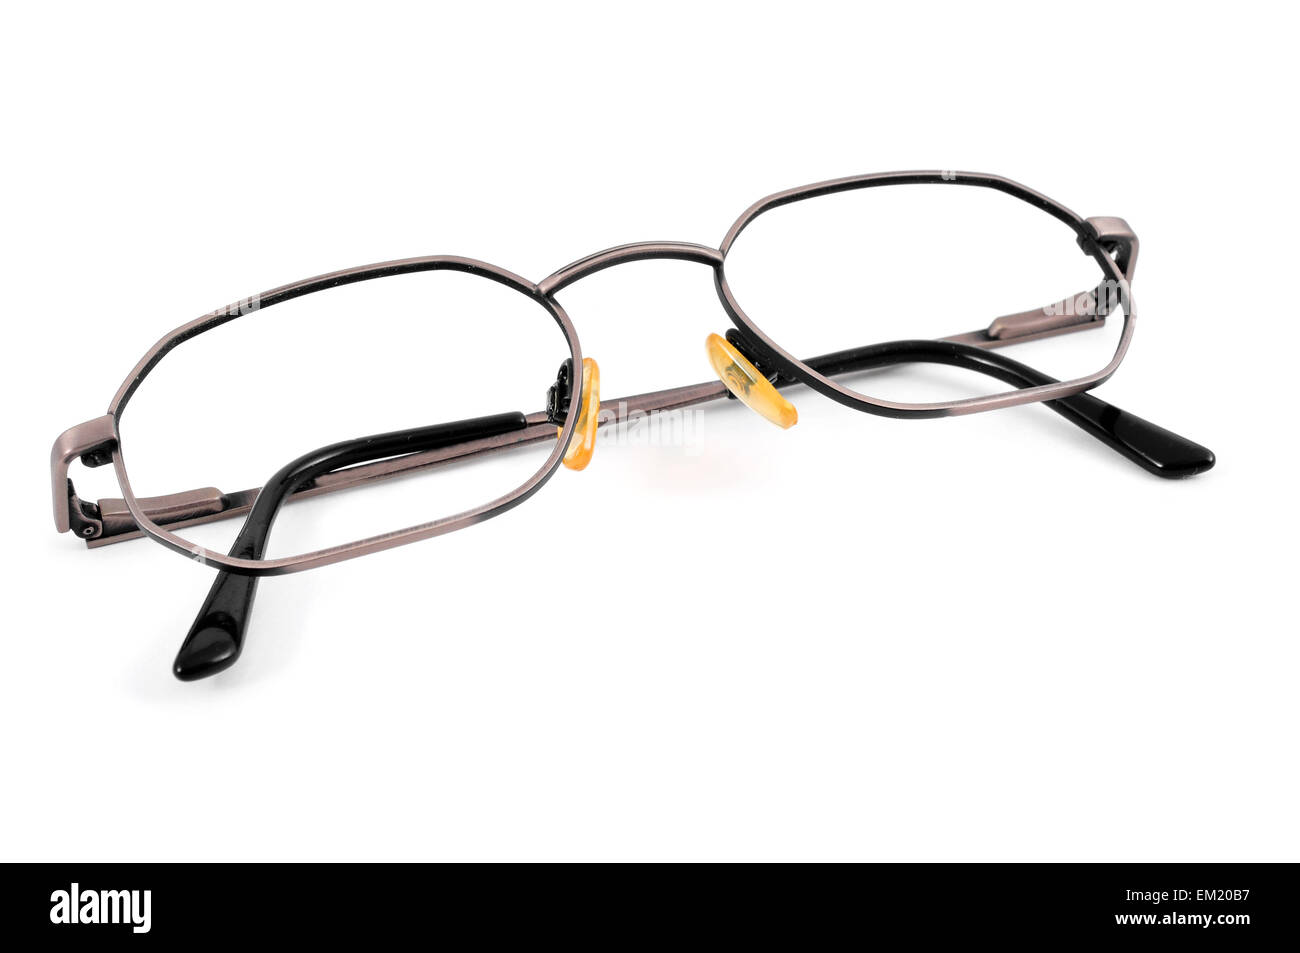 closeup of a pair of metal-rimmed eyeglasses on a white background - Stock Image